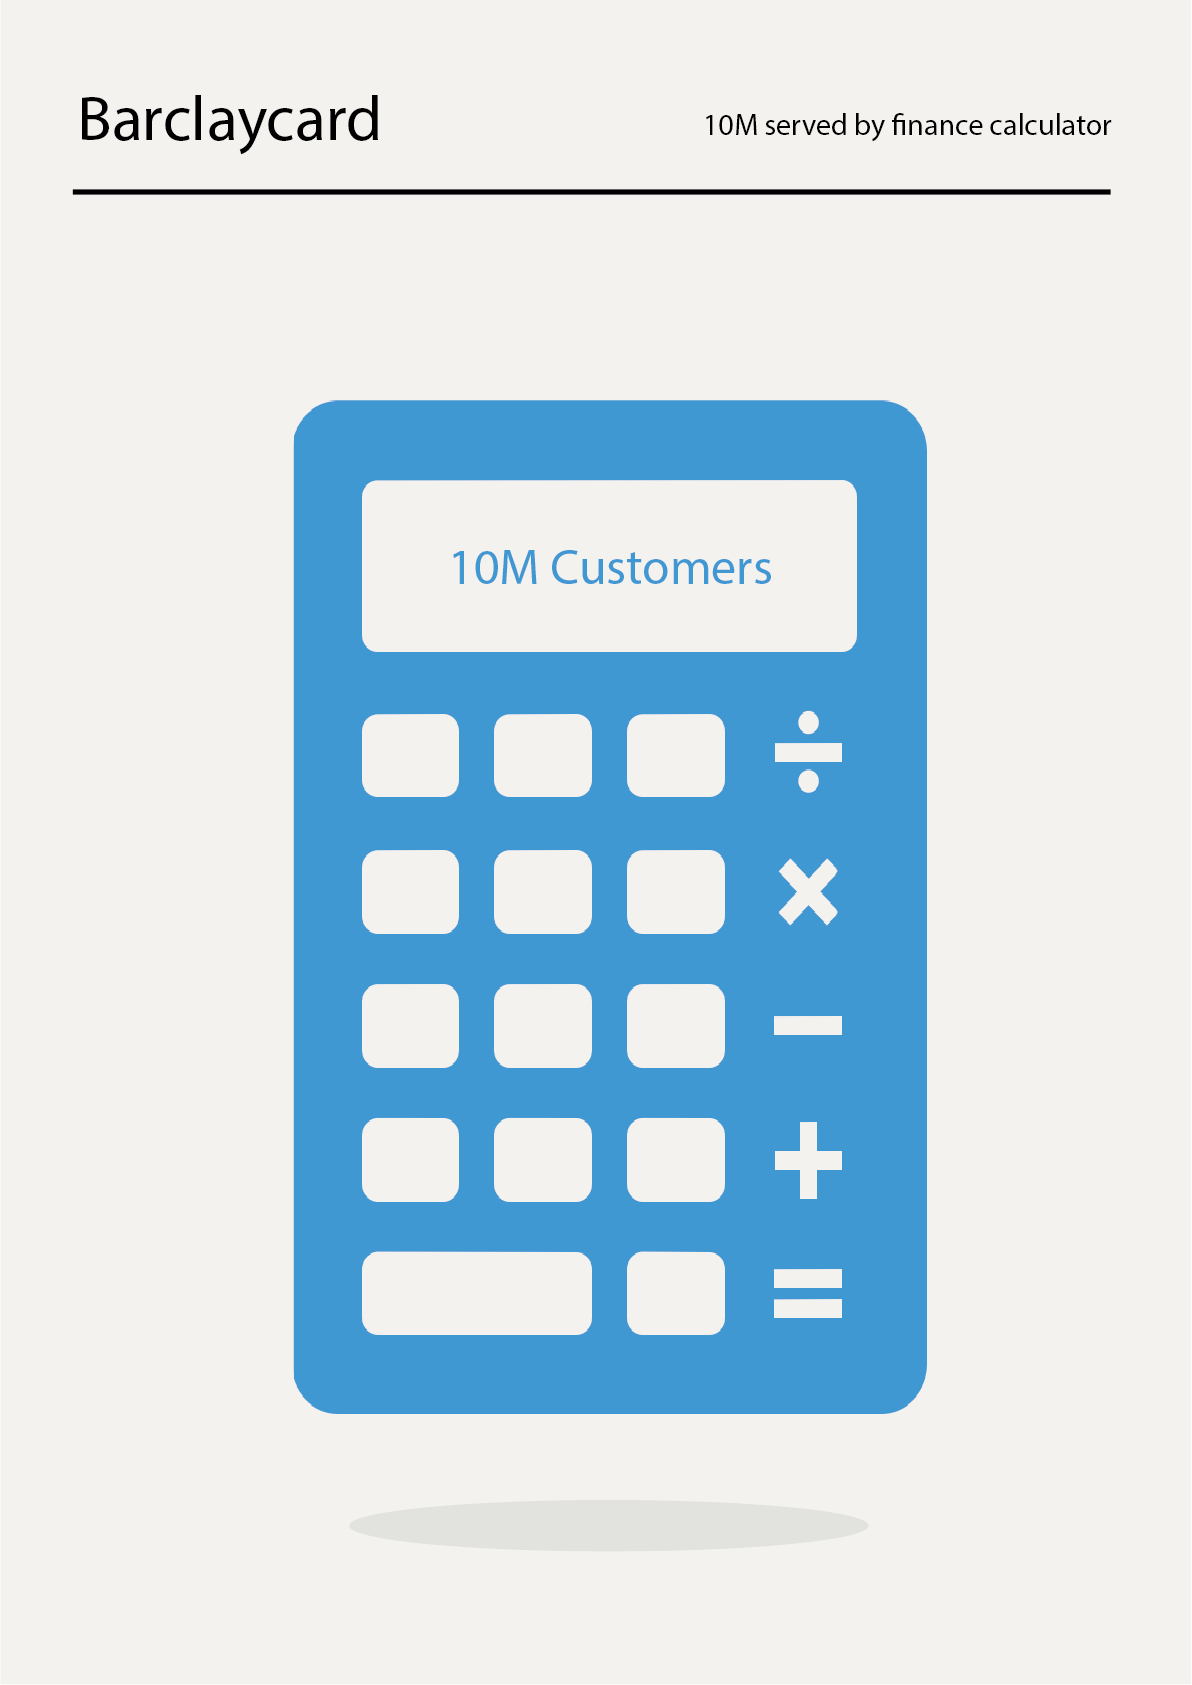 Barclaycard: Served by finance calculator